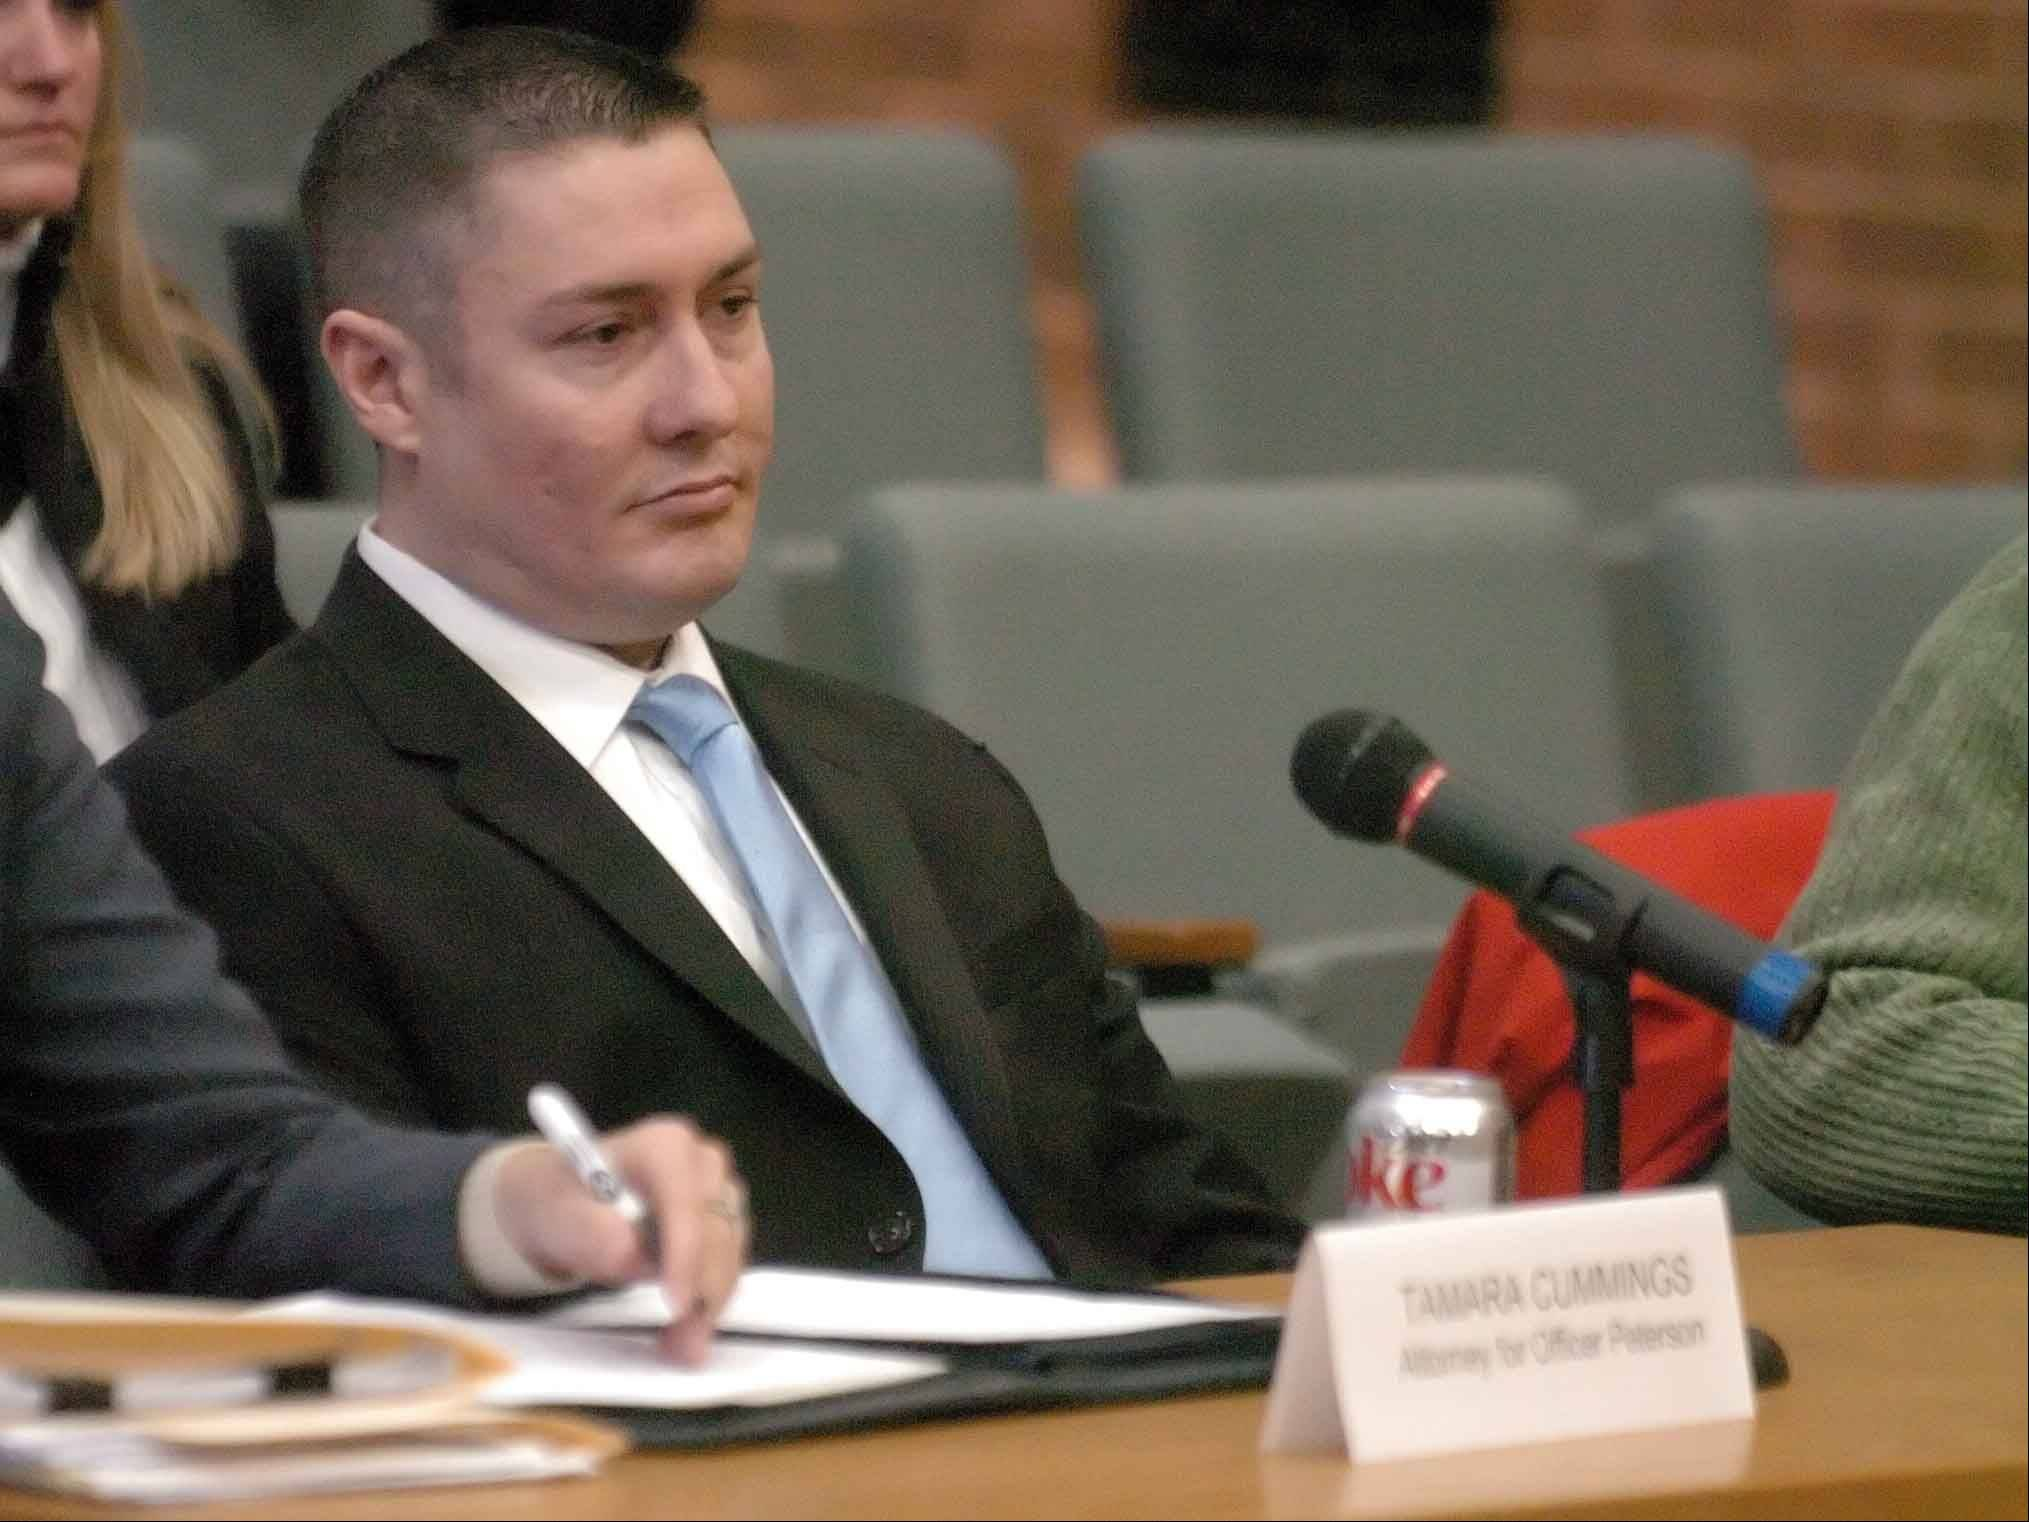 Former Oak Brook Police Officer Stephen Peterson attends a hearing before village officials in 2010.